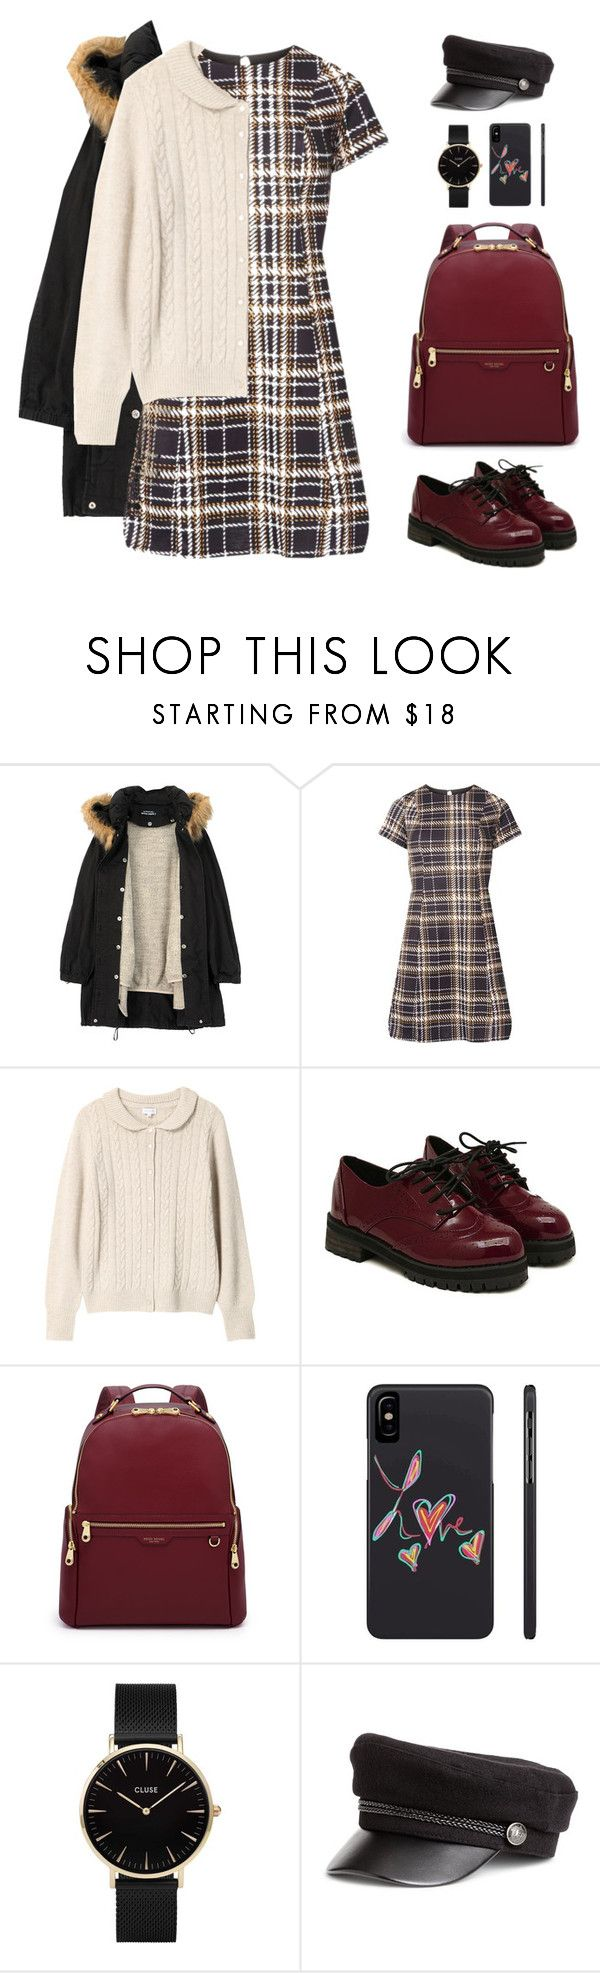 """""""a touch of death"""" by wang852g7 ❤ liked on Polyvore featuring beauty, Humör, Dorothy Perkins, Mackintosh Philosophy, Henri Bendel and CLUSE"""